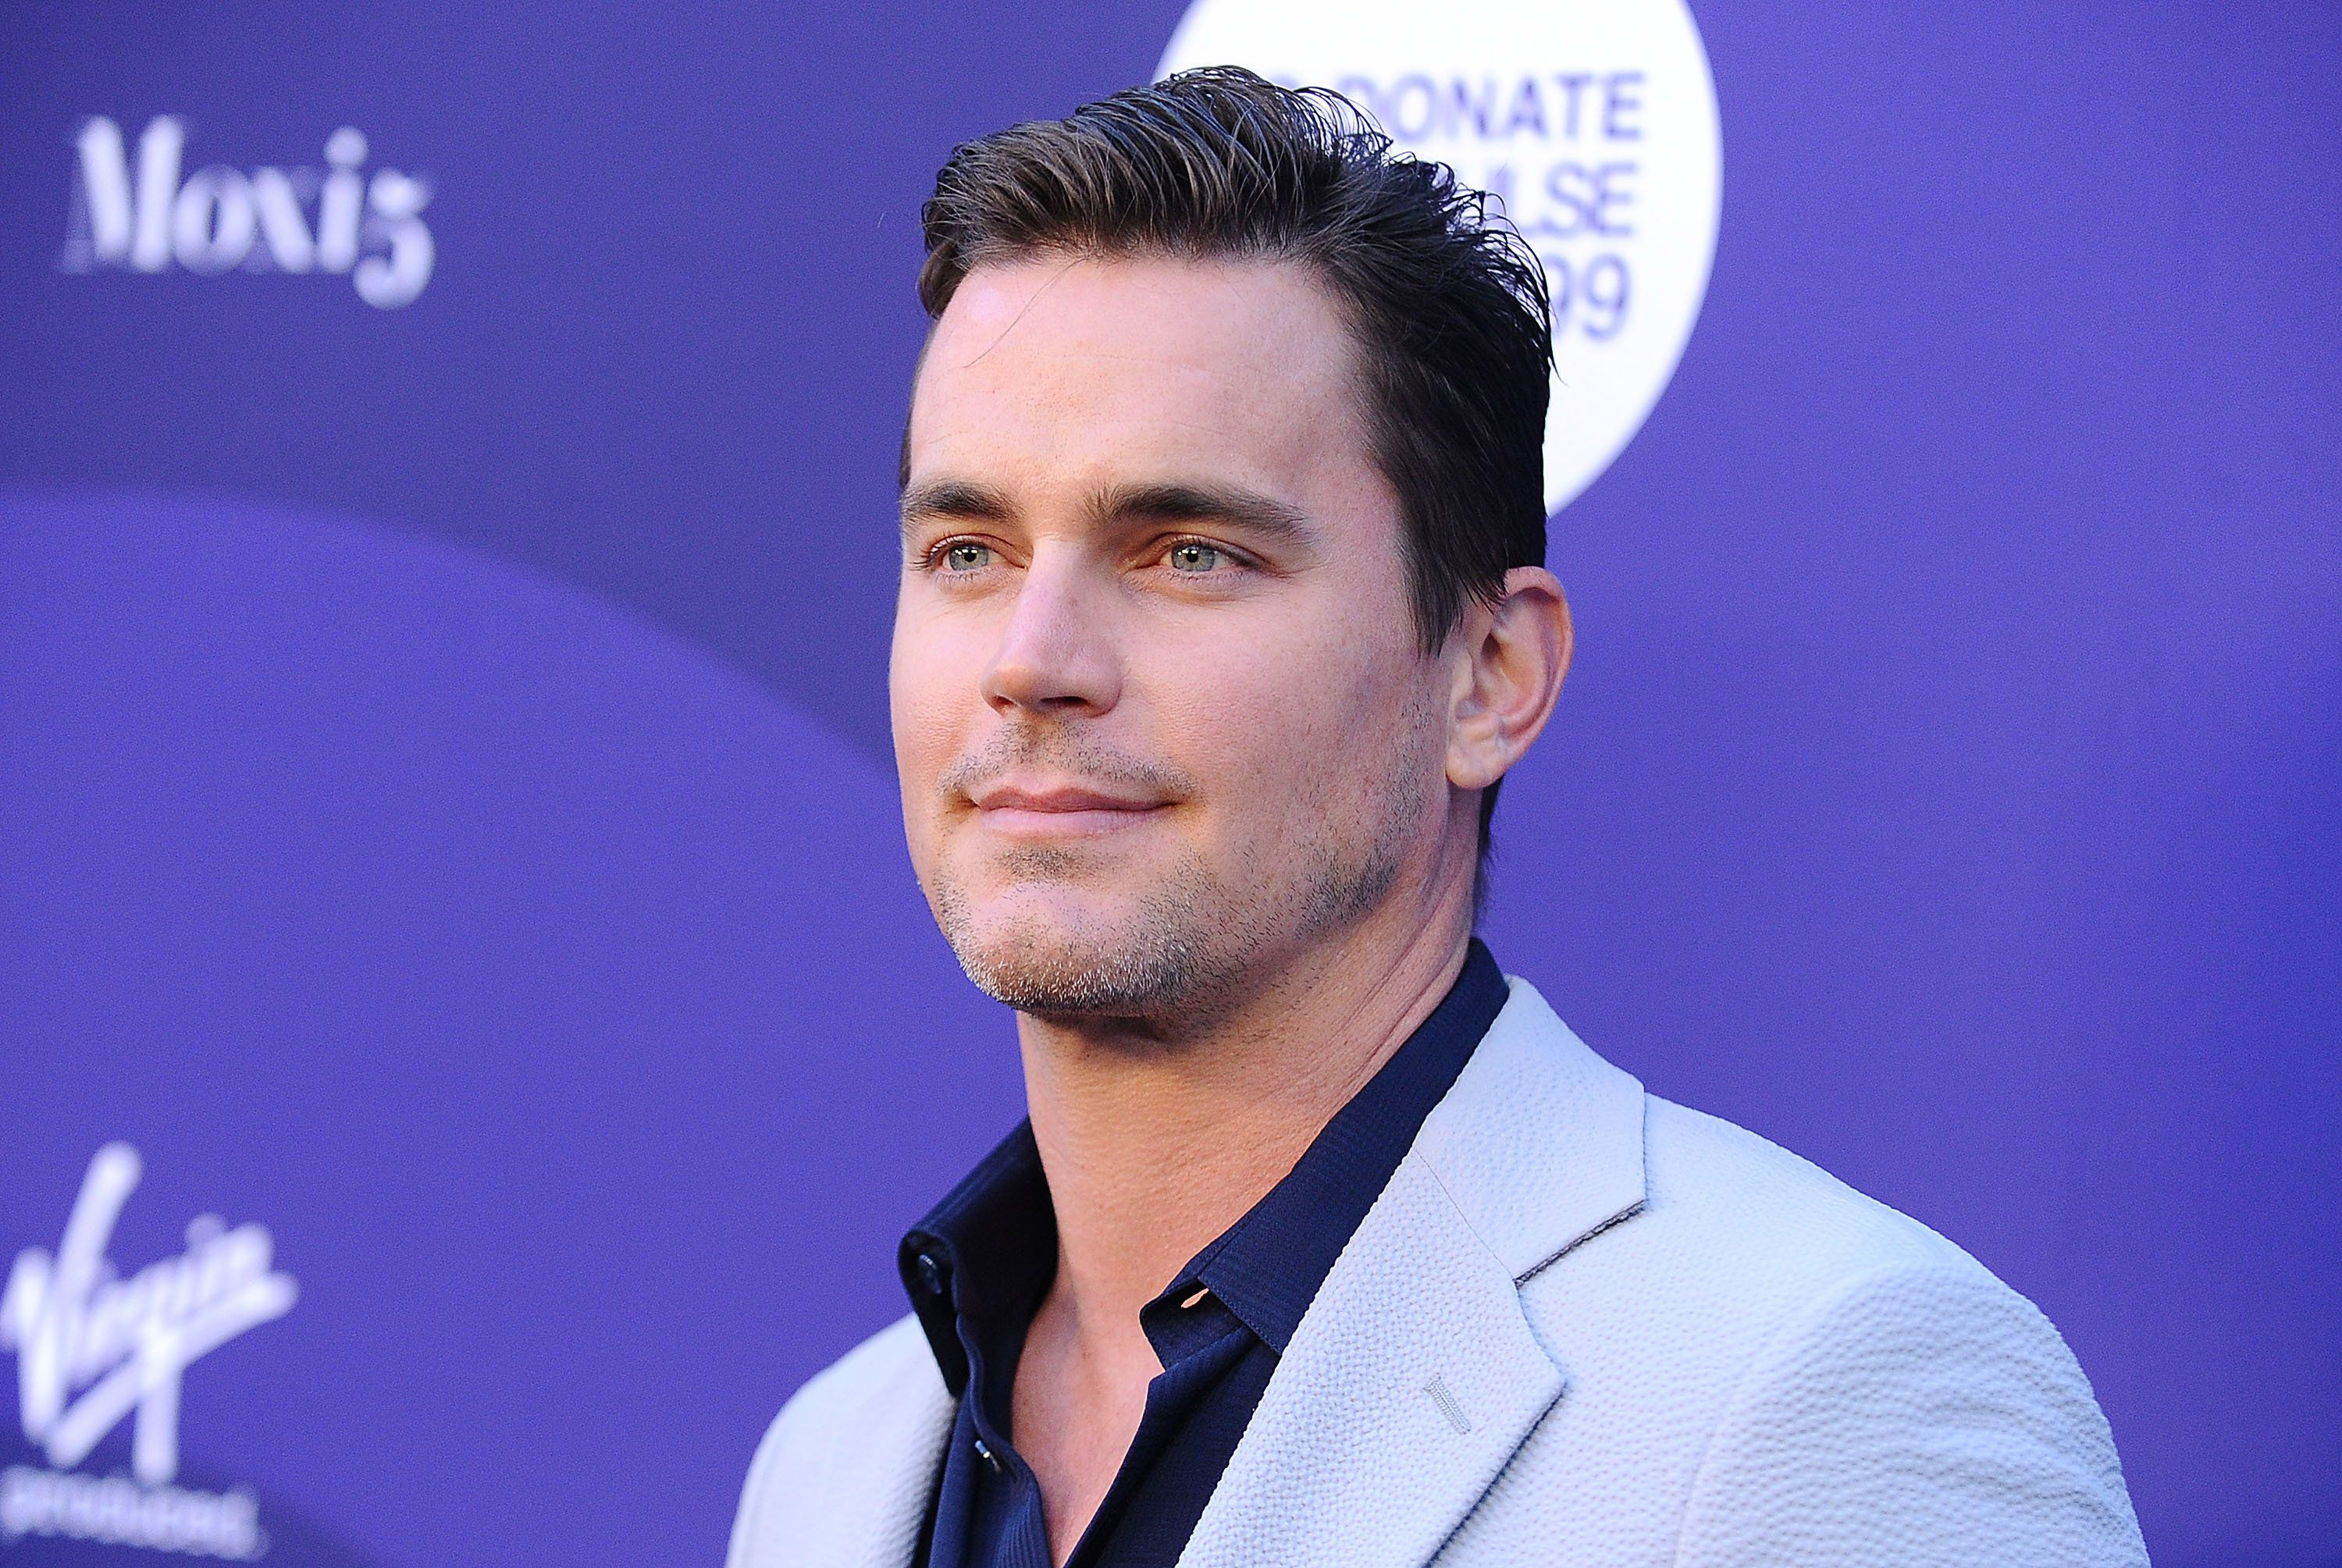 LOS ANGELES, CA - AUGUST 20:  Actor Matt Bomer attends a benefit for onePULSE Foundation at NeueHouse Hollywood on August 19, 2016 in Los Angeles, California.  (Photo by Jason LaVeris/FilmMagic)